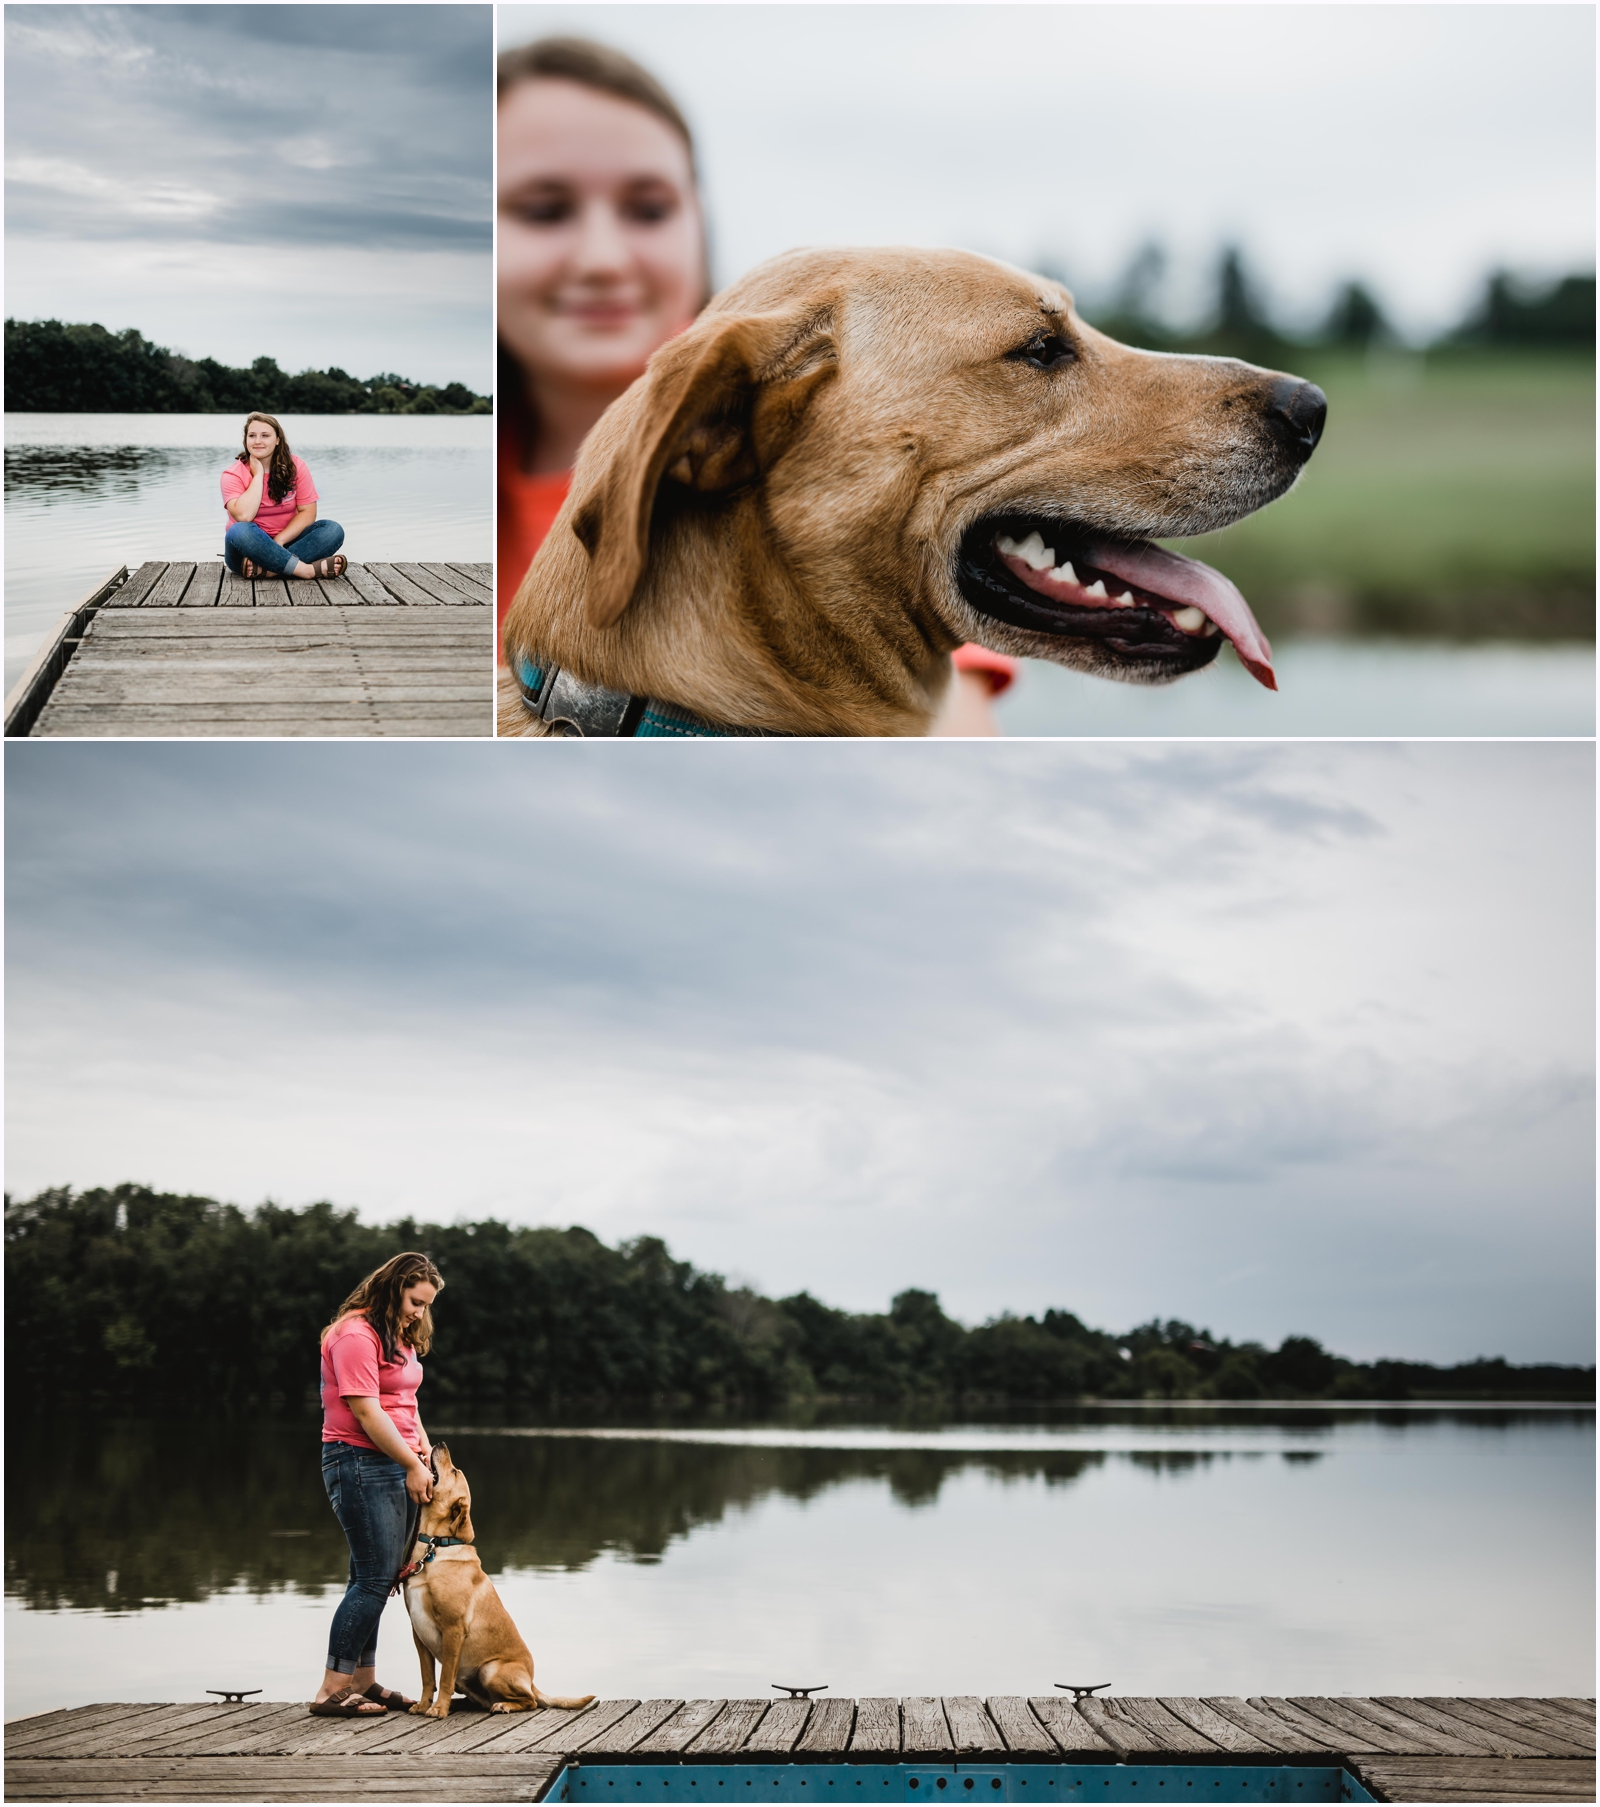 senior_portraits_photos_high_school_mount_pleasant_jamie_leonard_photography_pa_ligonier_kecksburg_lake.jpg